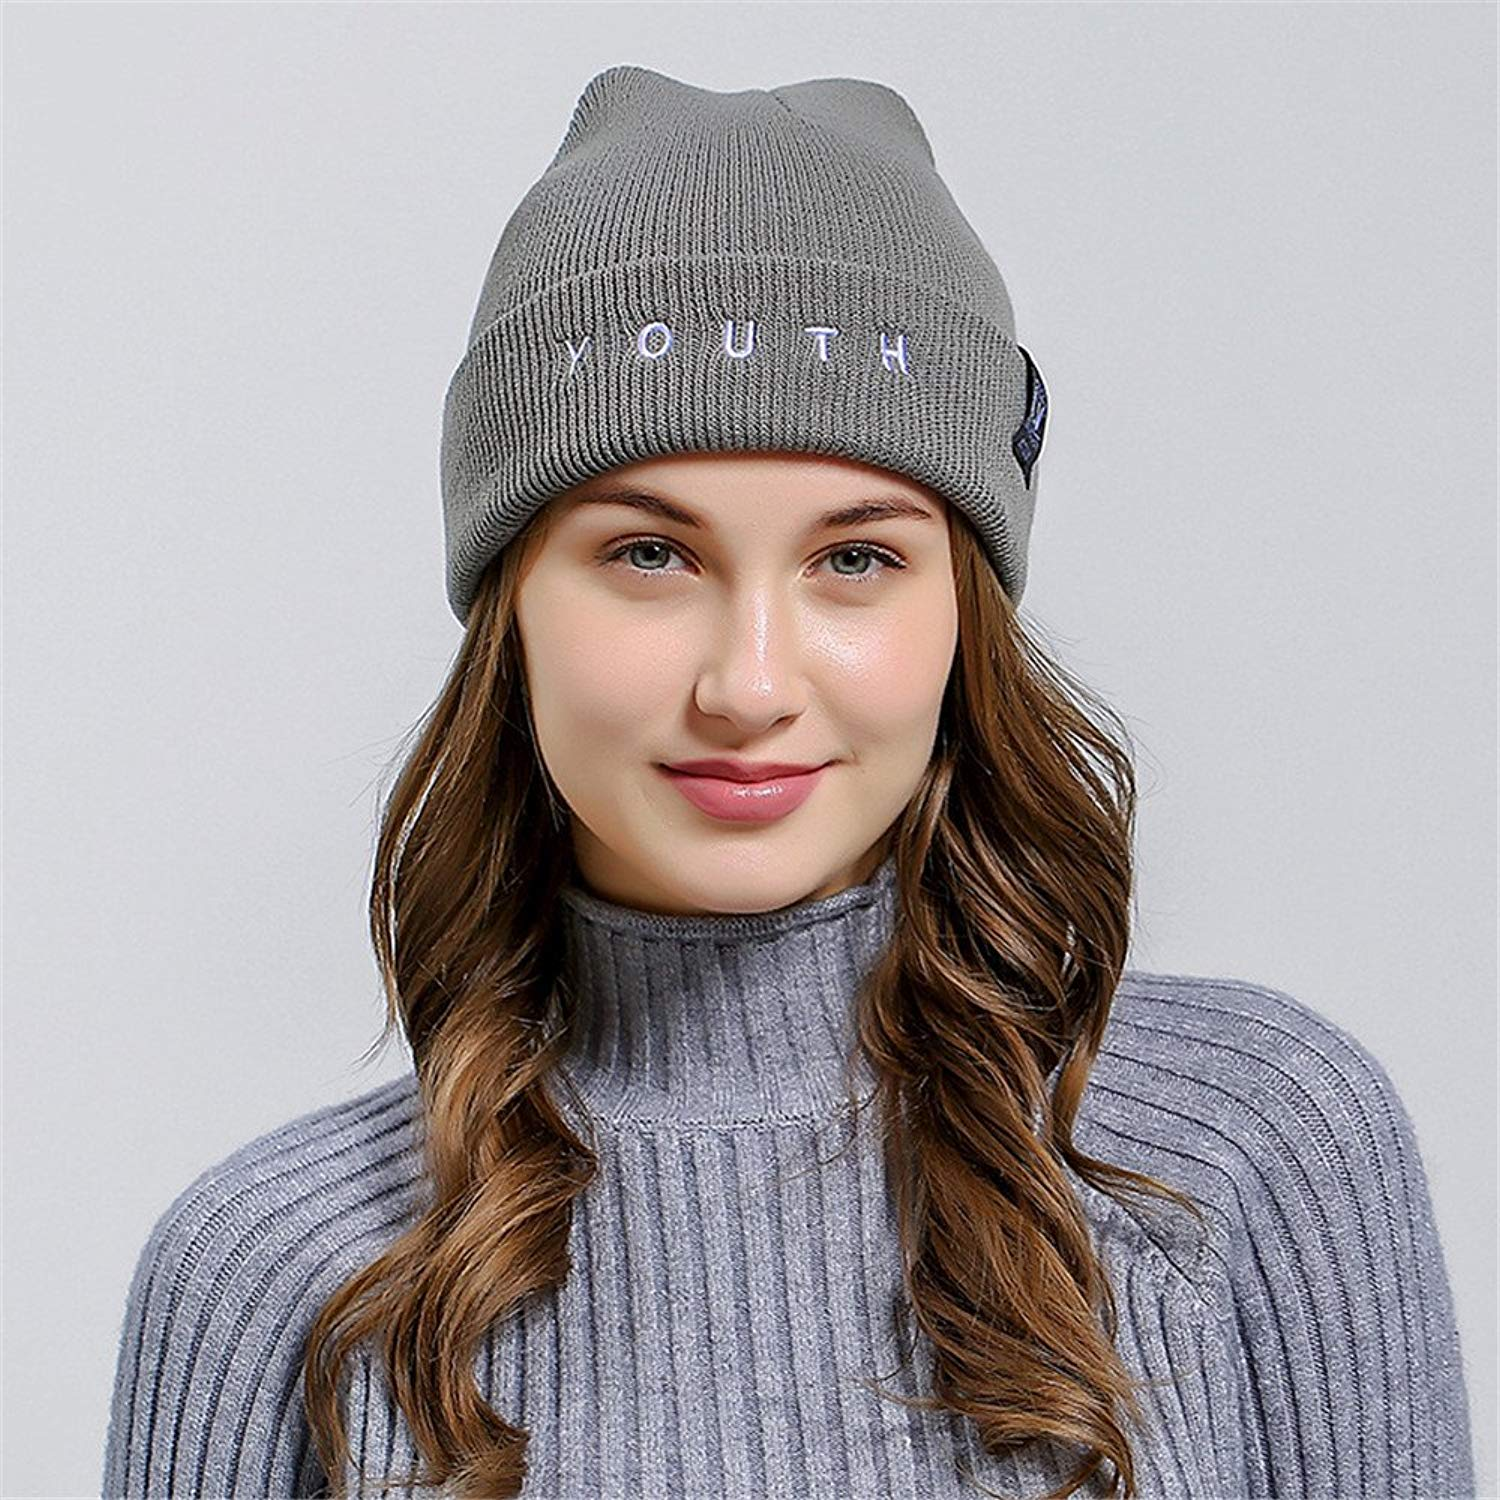 Landor Youth Letter Embroidered Autumn and Winter Outdoor Women Warm Hats Couple Personality Cuffed Pullover Knitted Cap